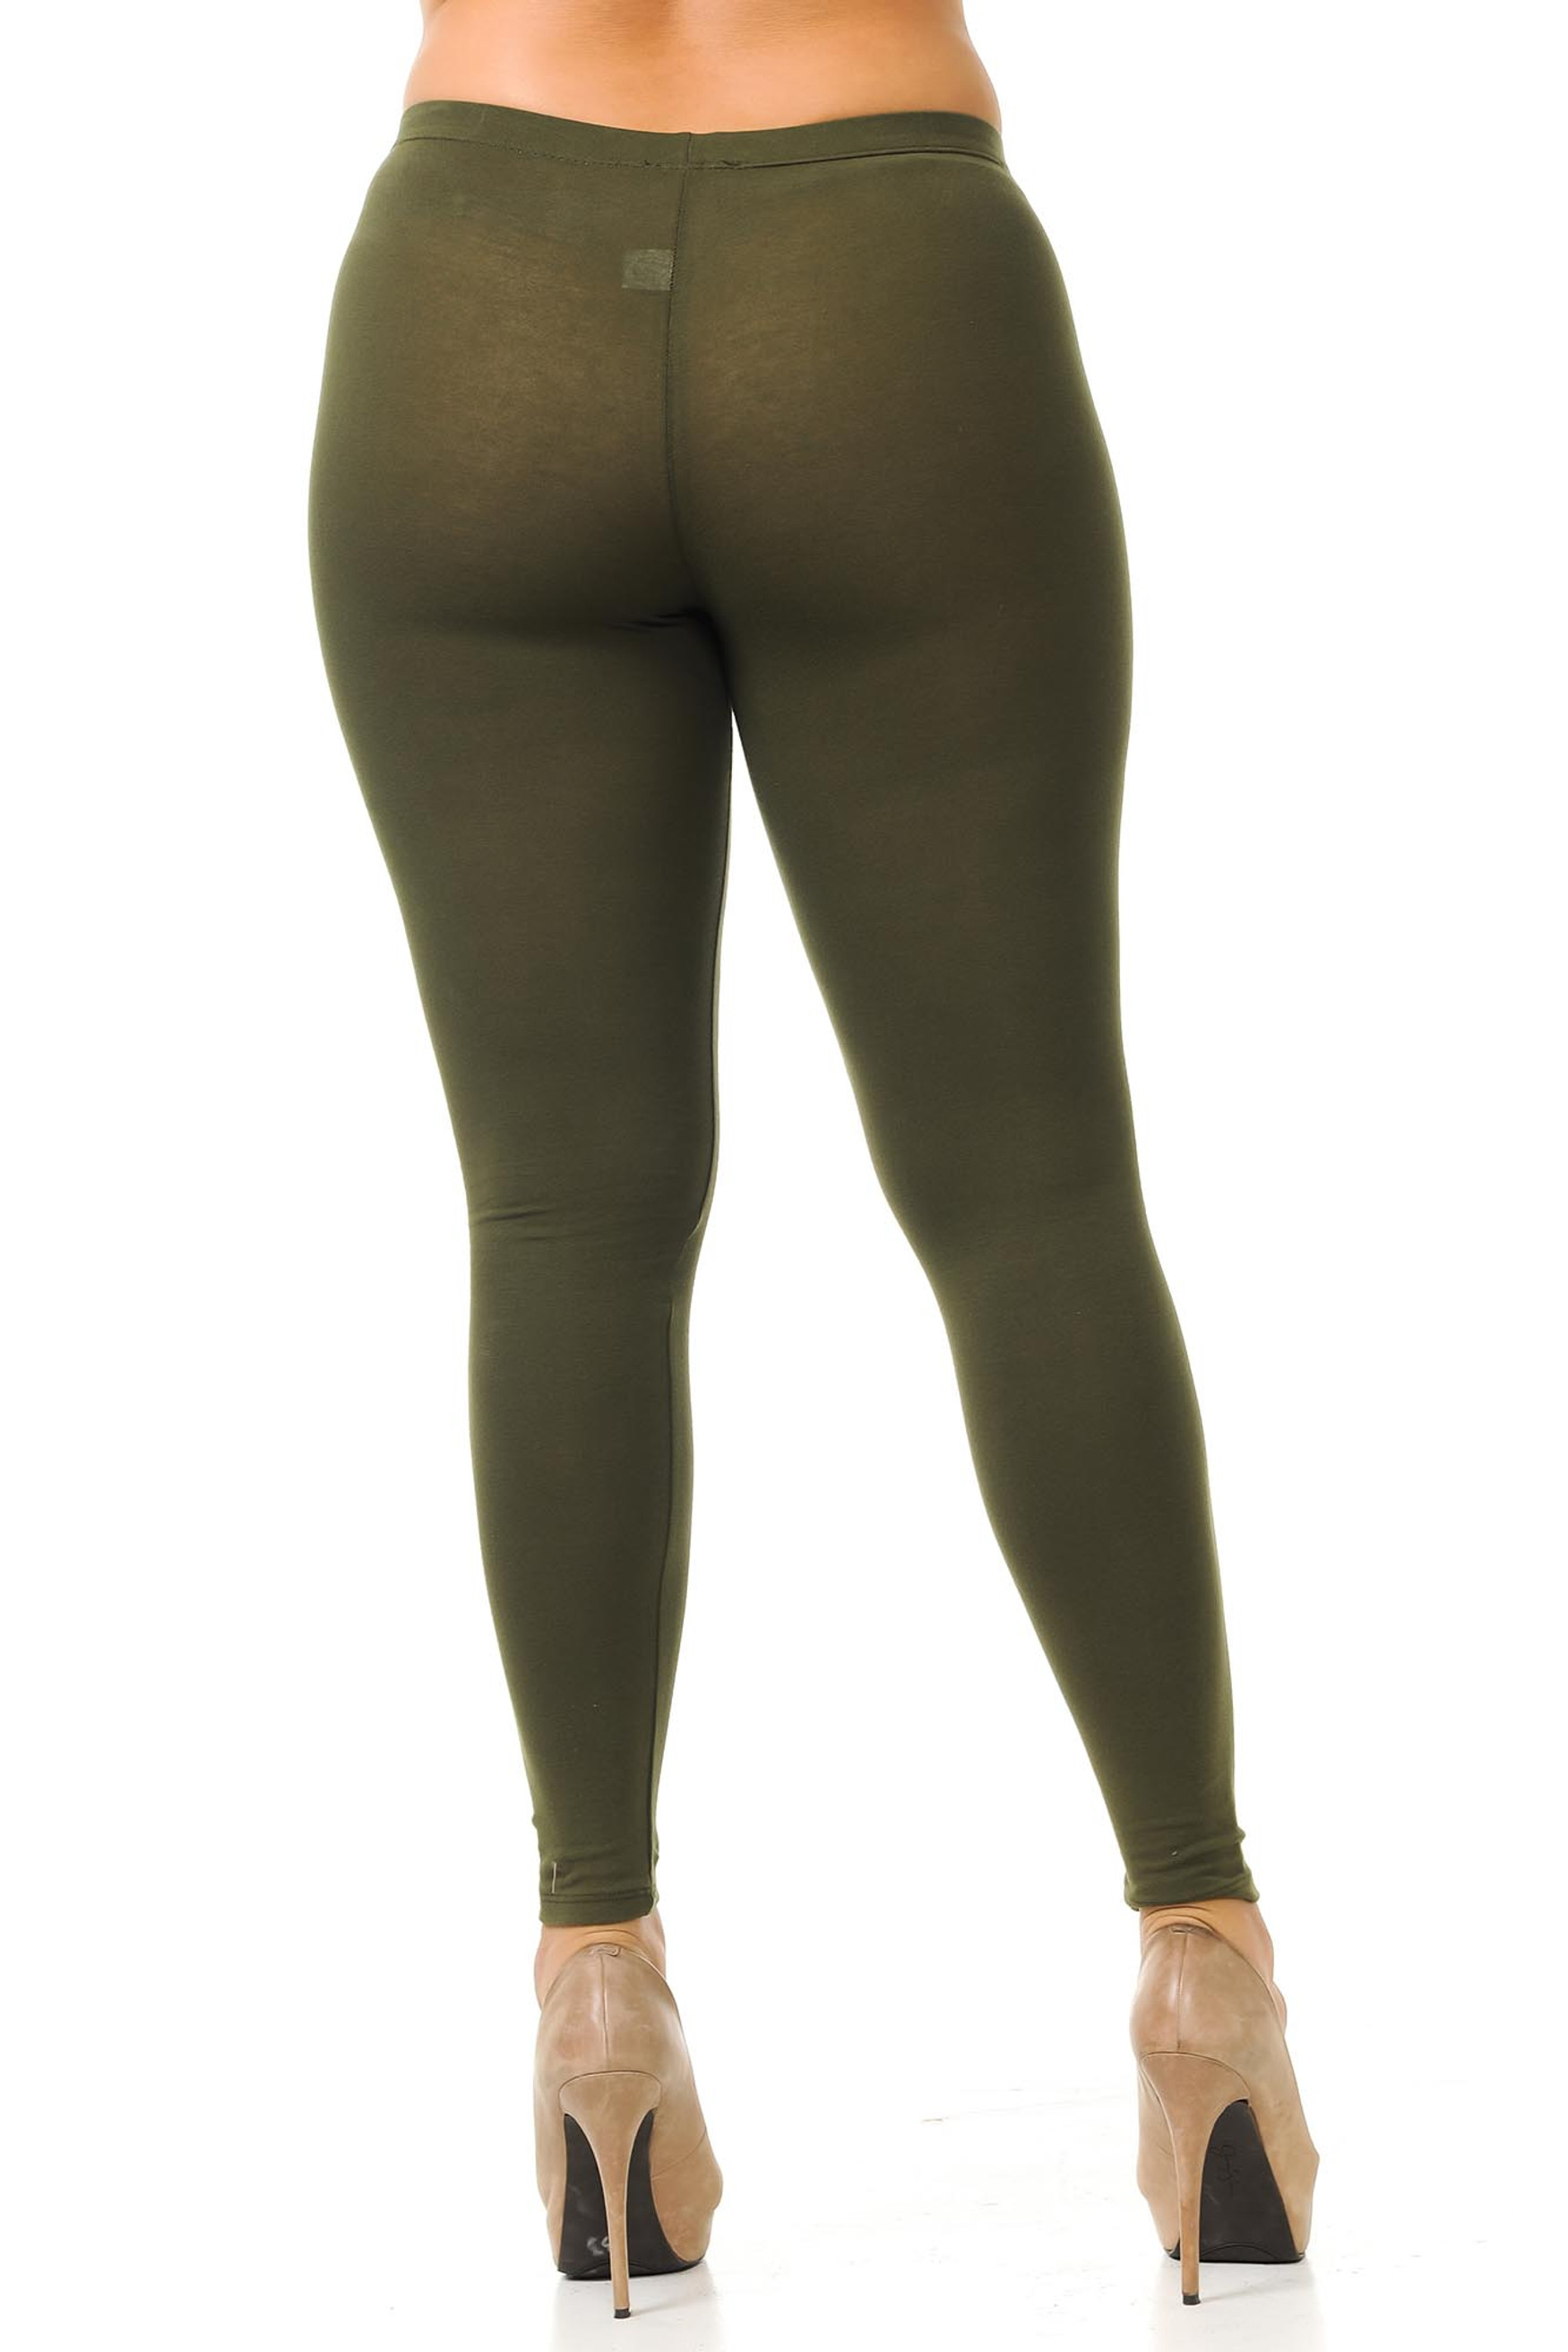 Rear view image of Olive USA Cotton Full Length Leggings - Plus Size